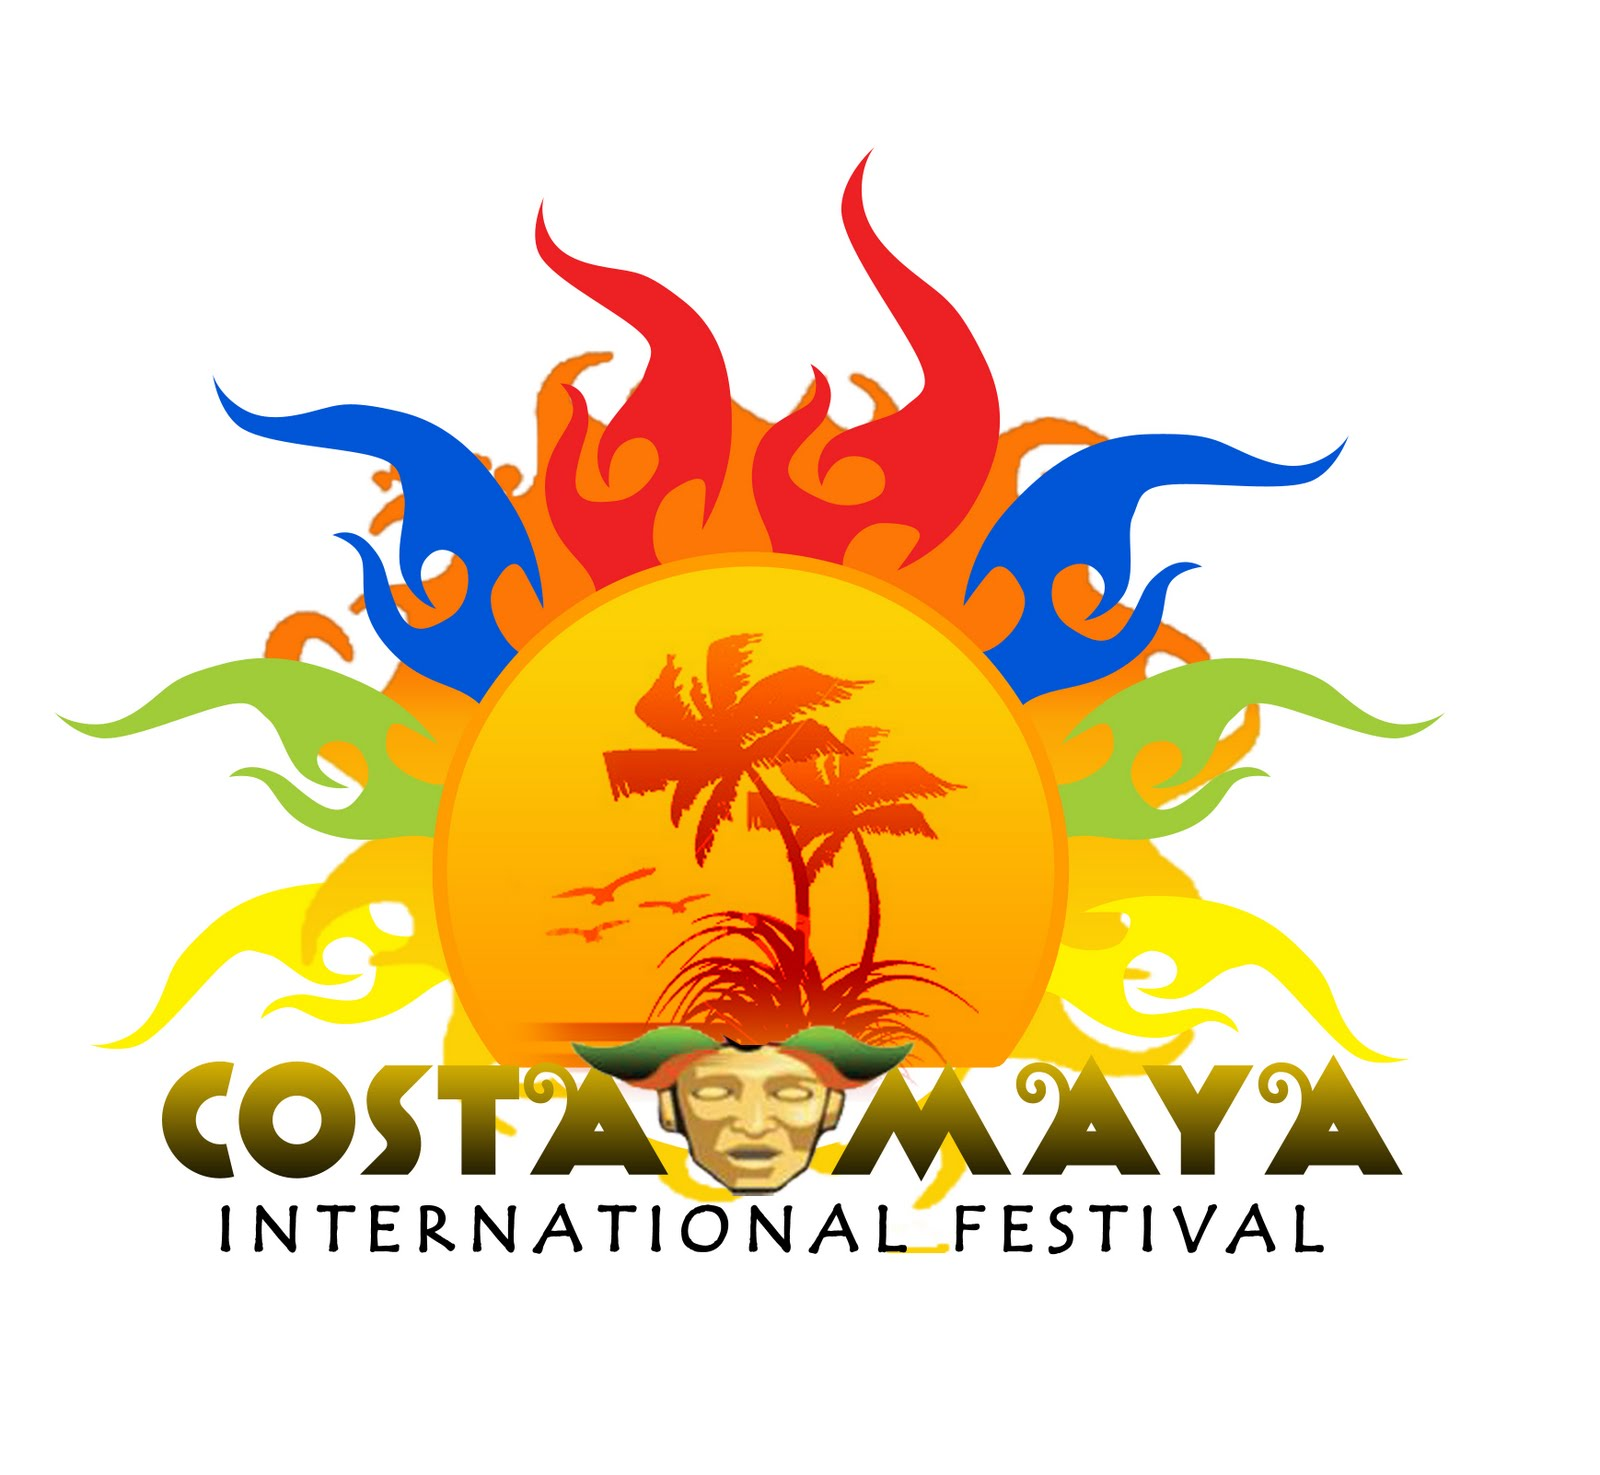 International Costa Maya Festival 2018